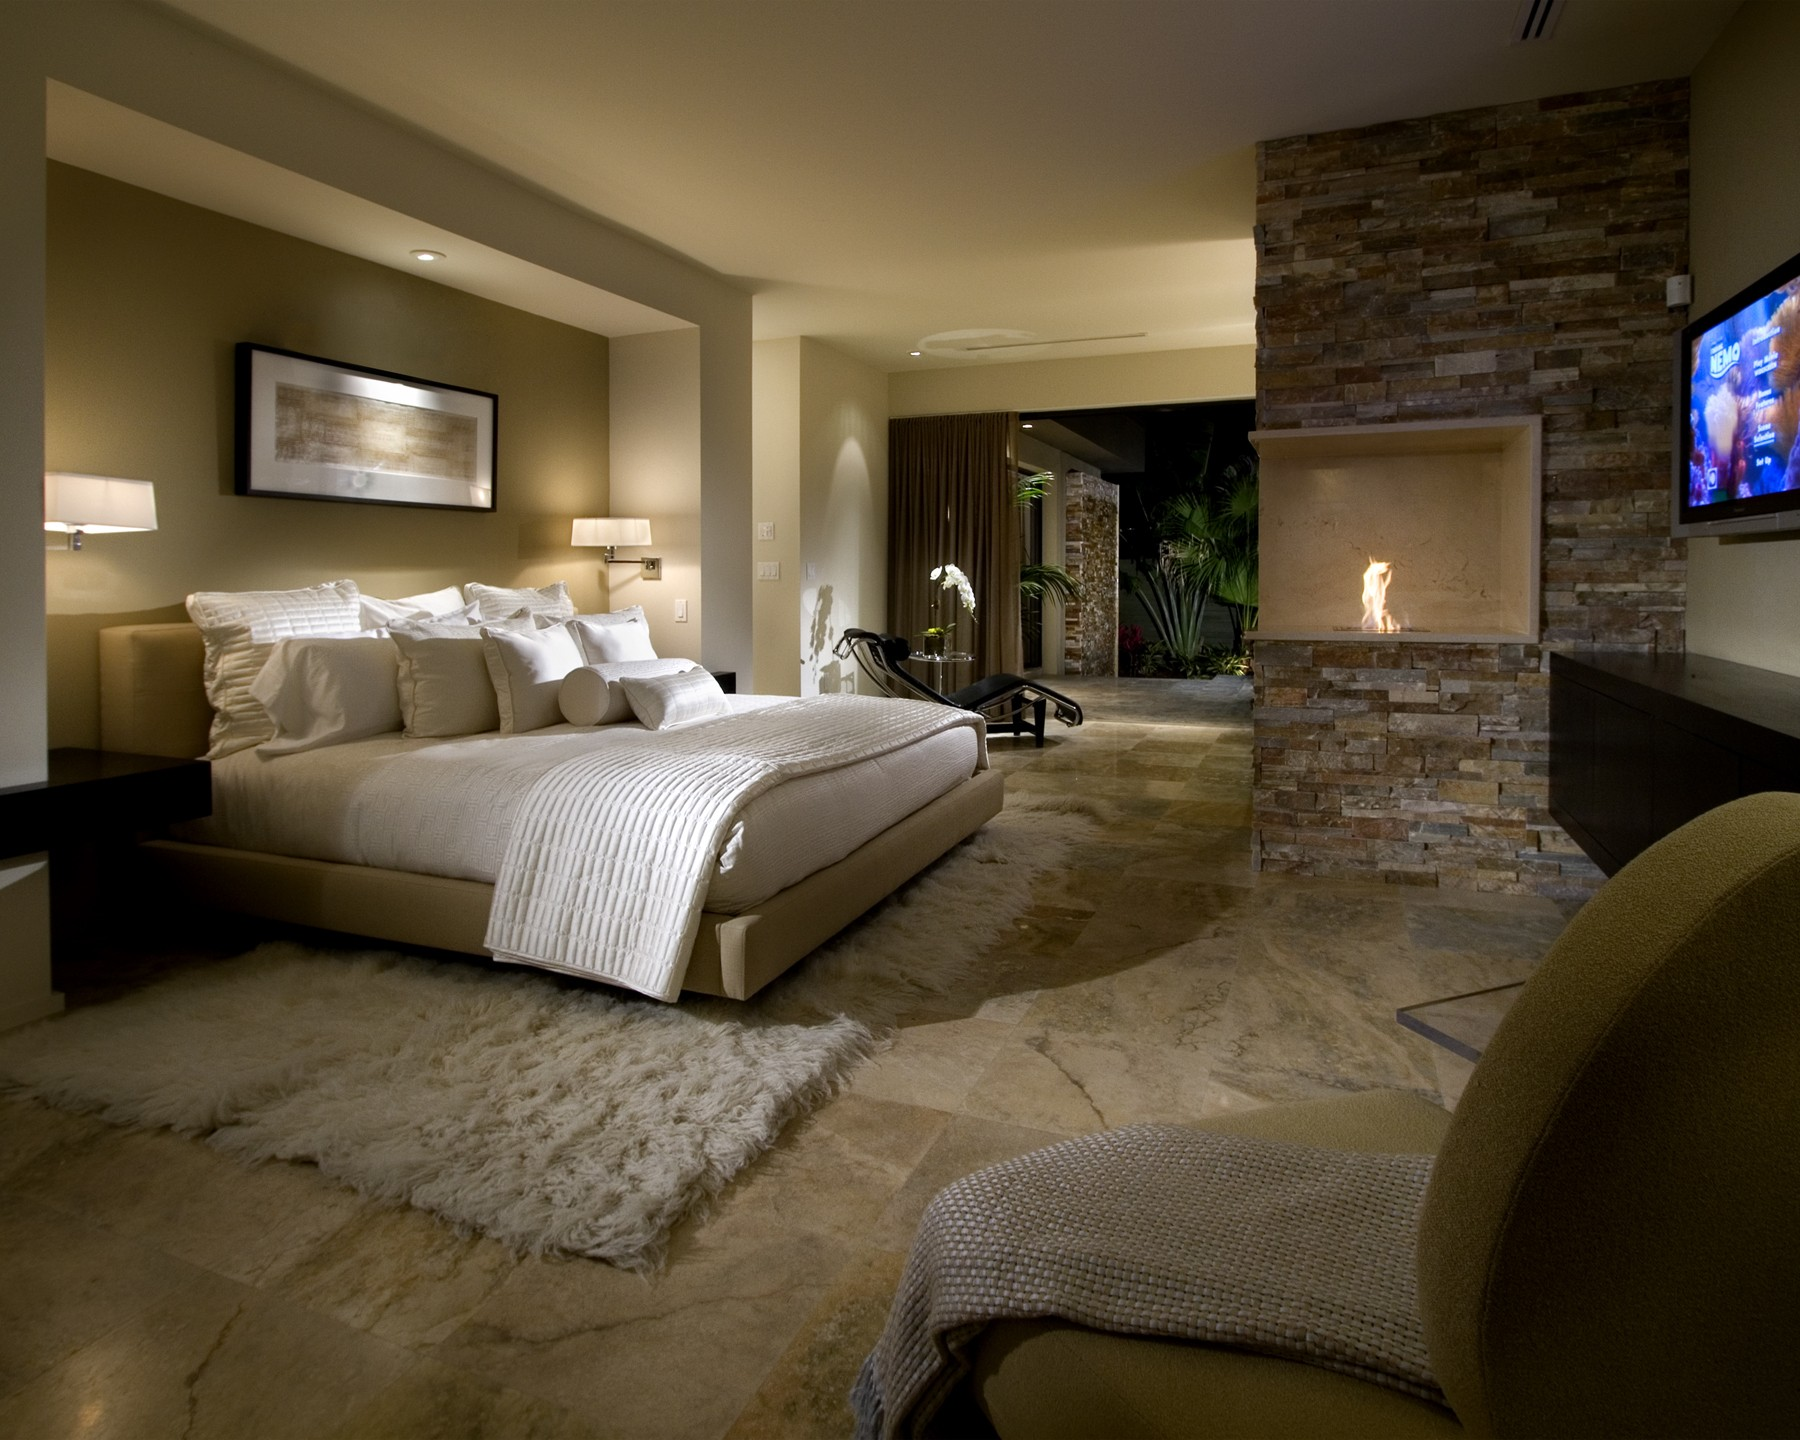 6 Bedrooms With Fireplaces We Would Love To Wake Up To Huffpost